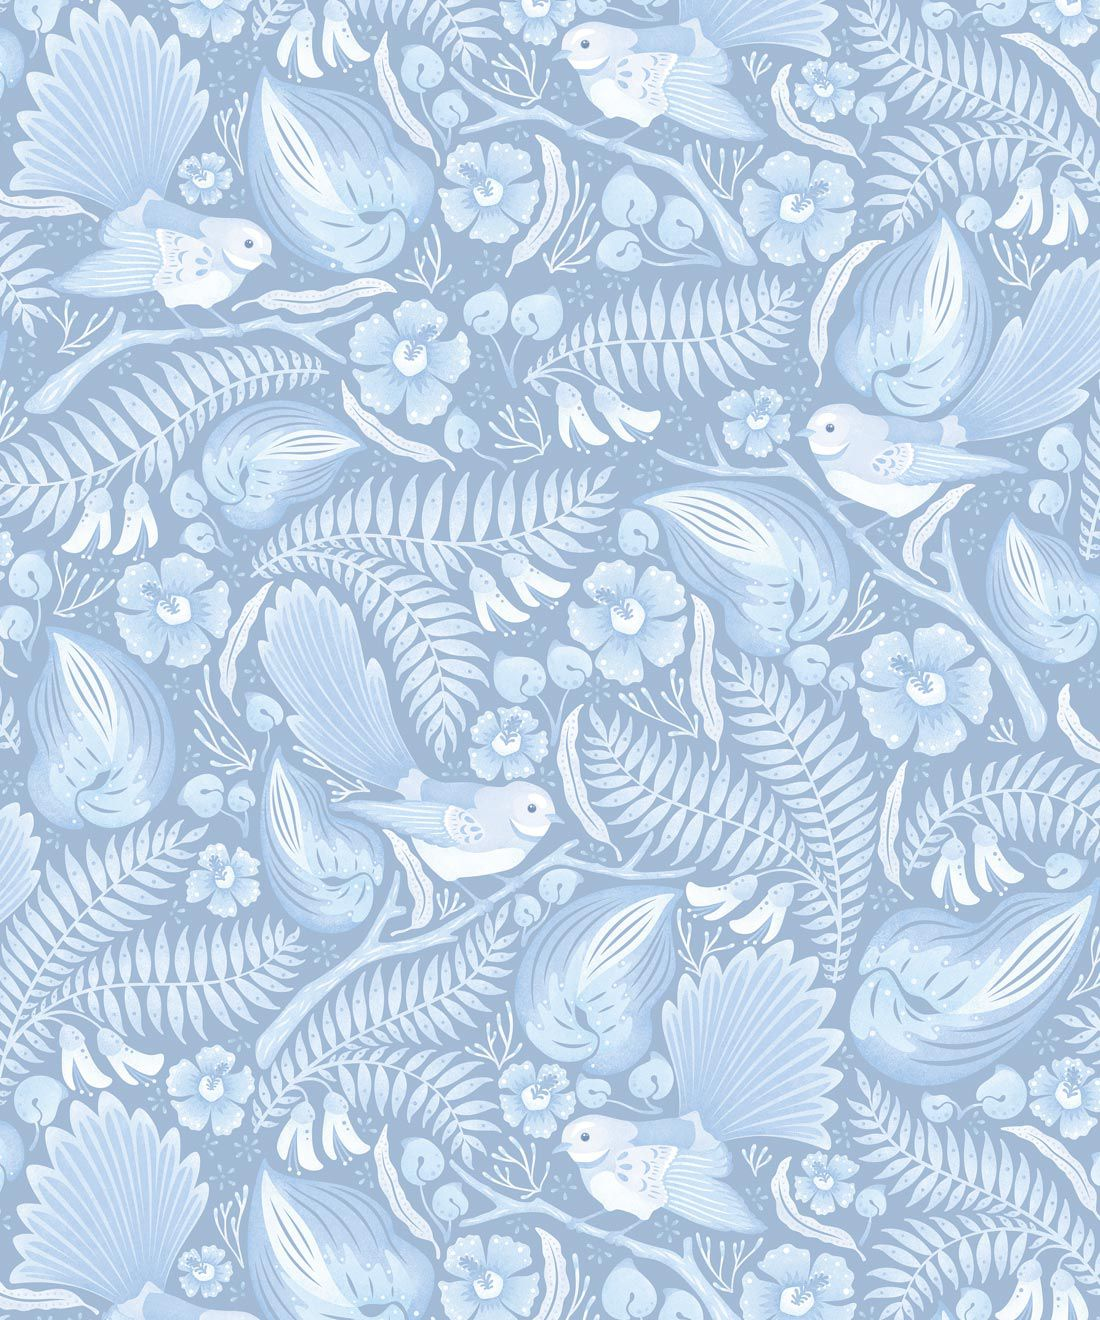 Faintails Wallpaper • New Zealand • Bird Wallpaper • Kowhai Tree • Kowhai Flowers • Light Blue Wallpaper • Ice Colorway